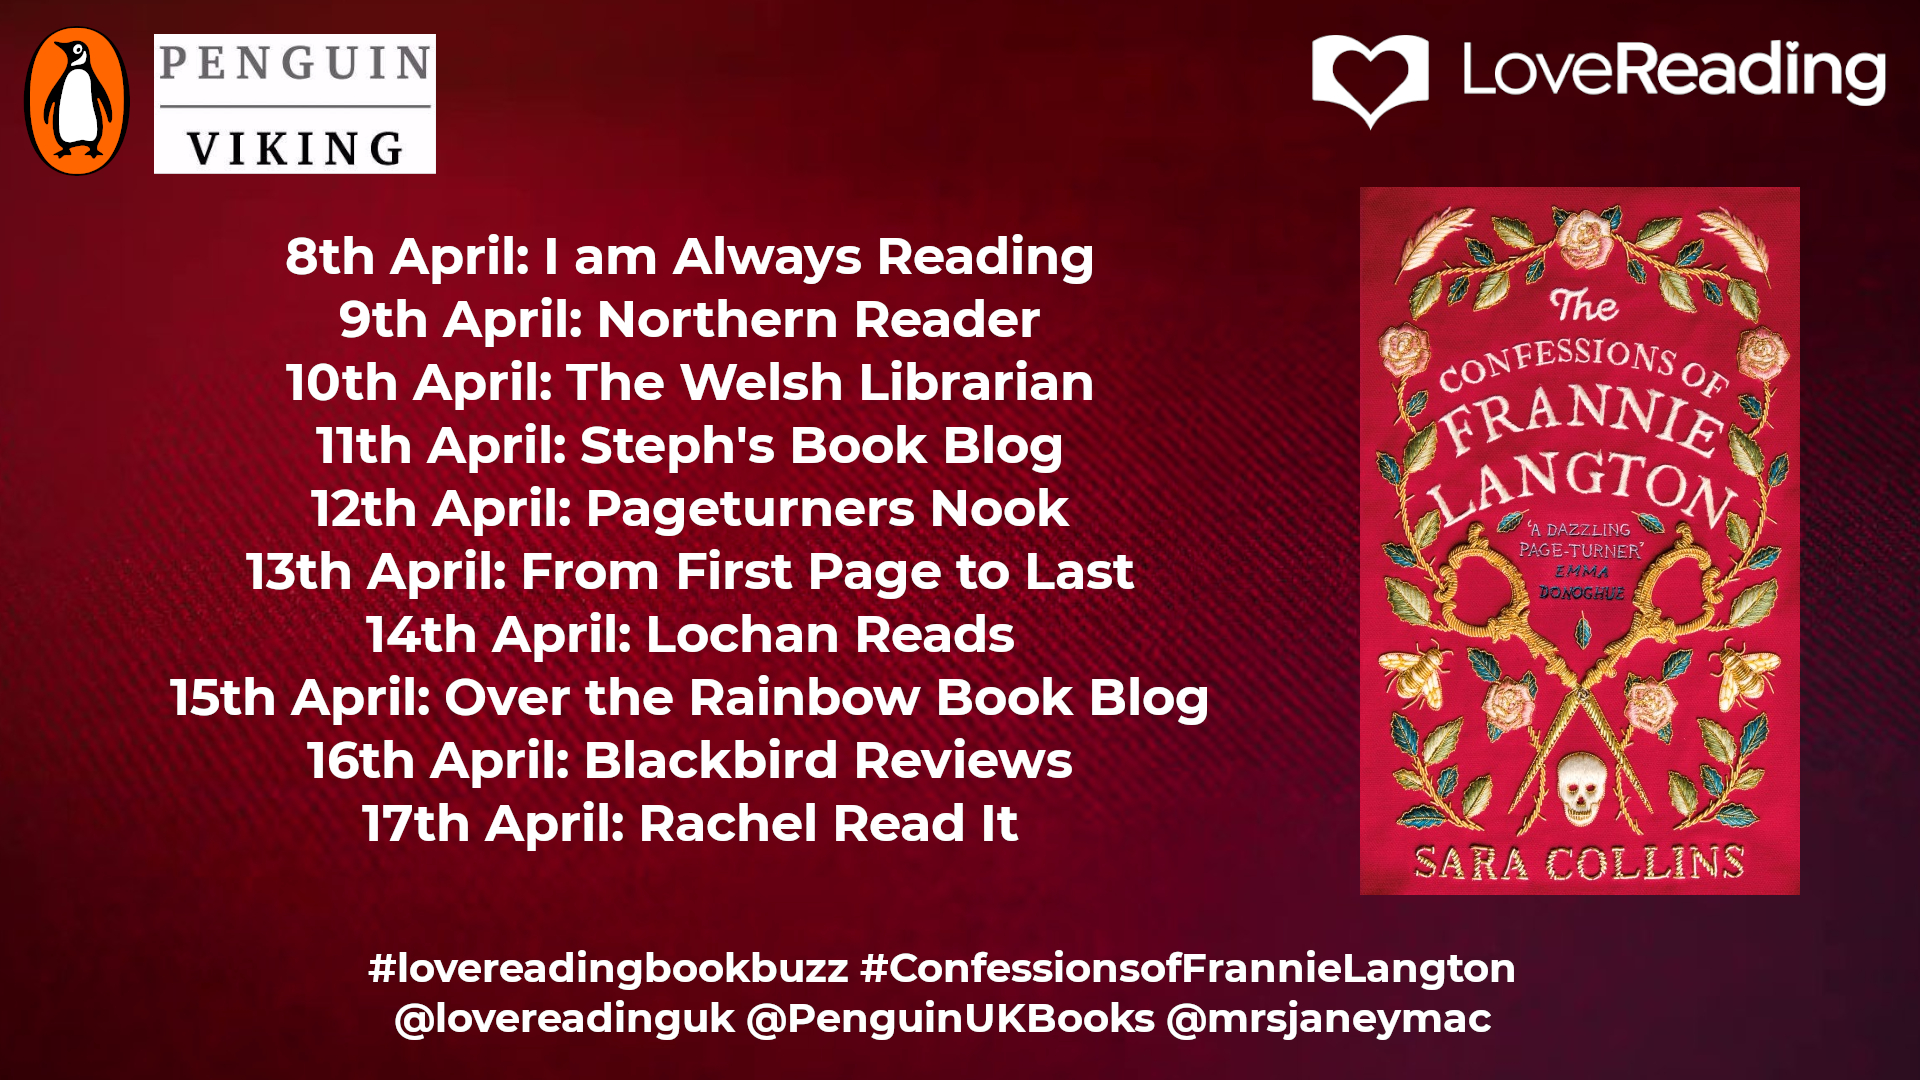 The Confession of Frannie Langton Ambassador Book Buzz Poster